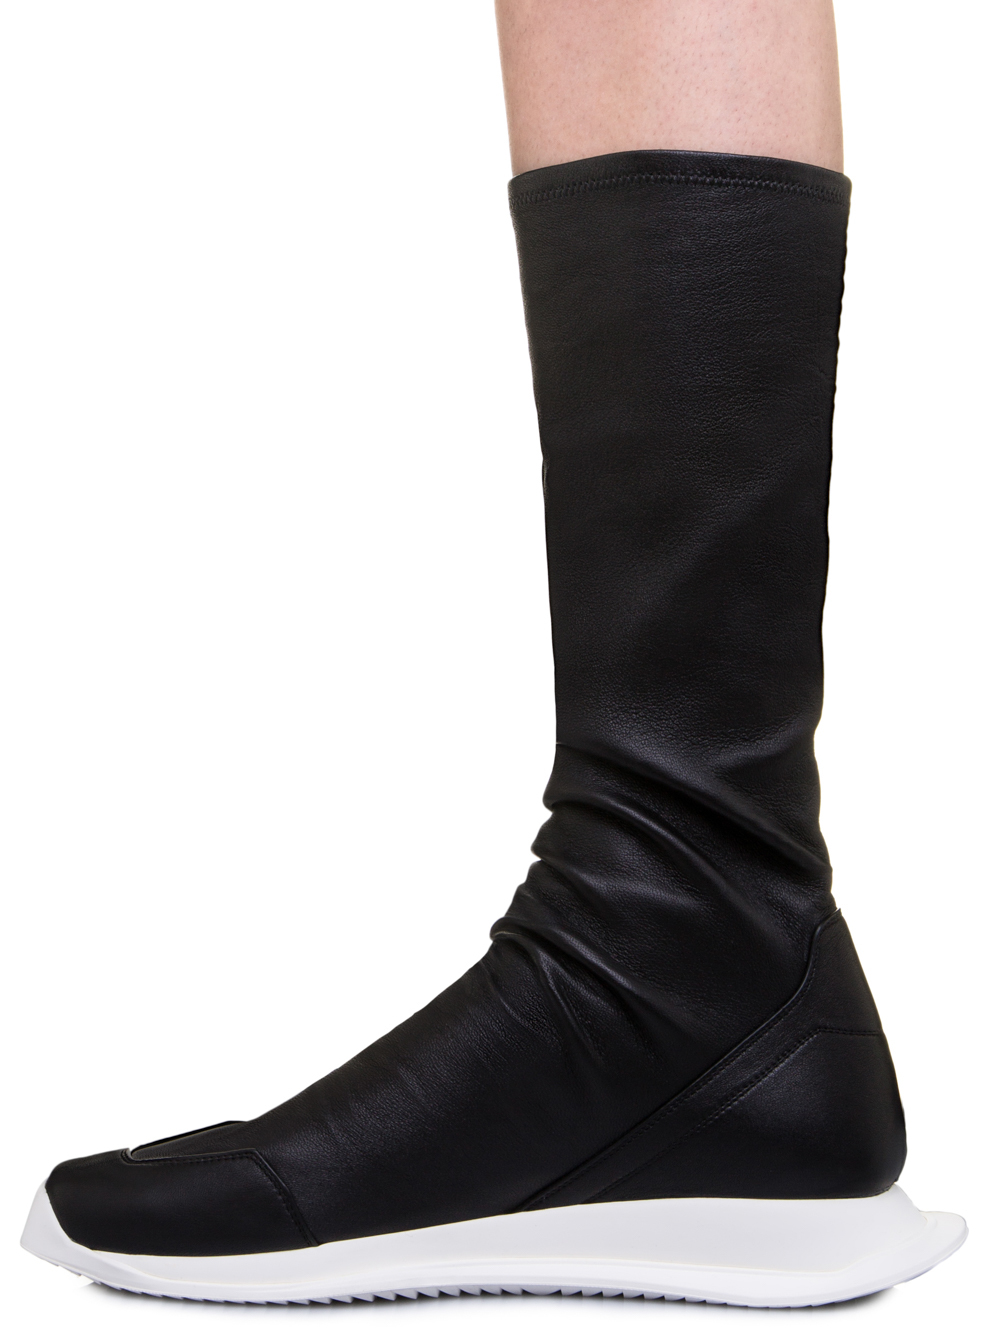 RICK OWENS OBLIQUE RUNNER STRETCH SOCK SNEAKERS IN BLACK LEATHER